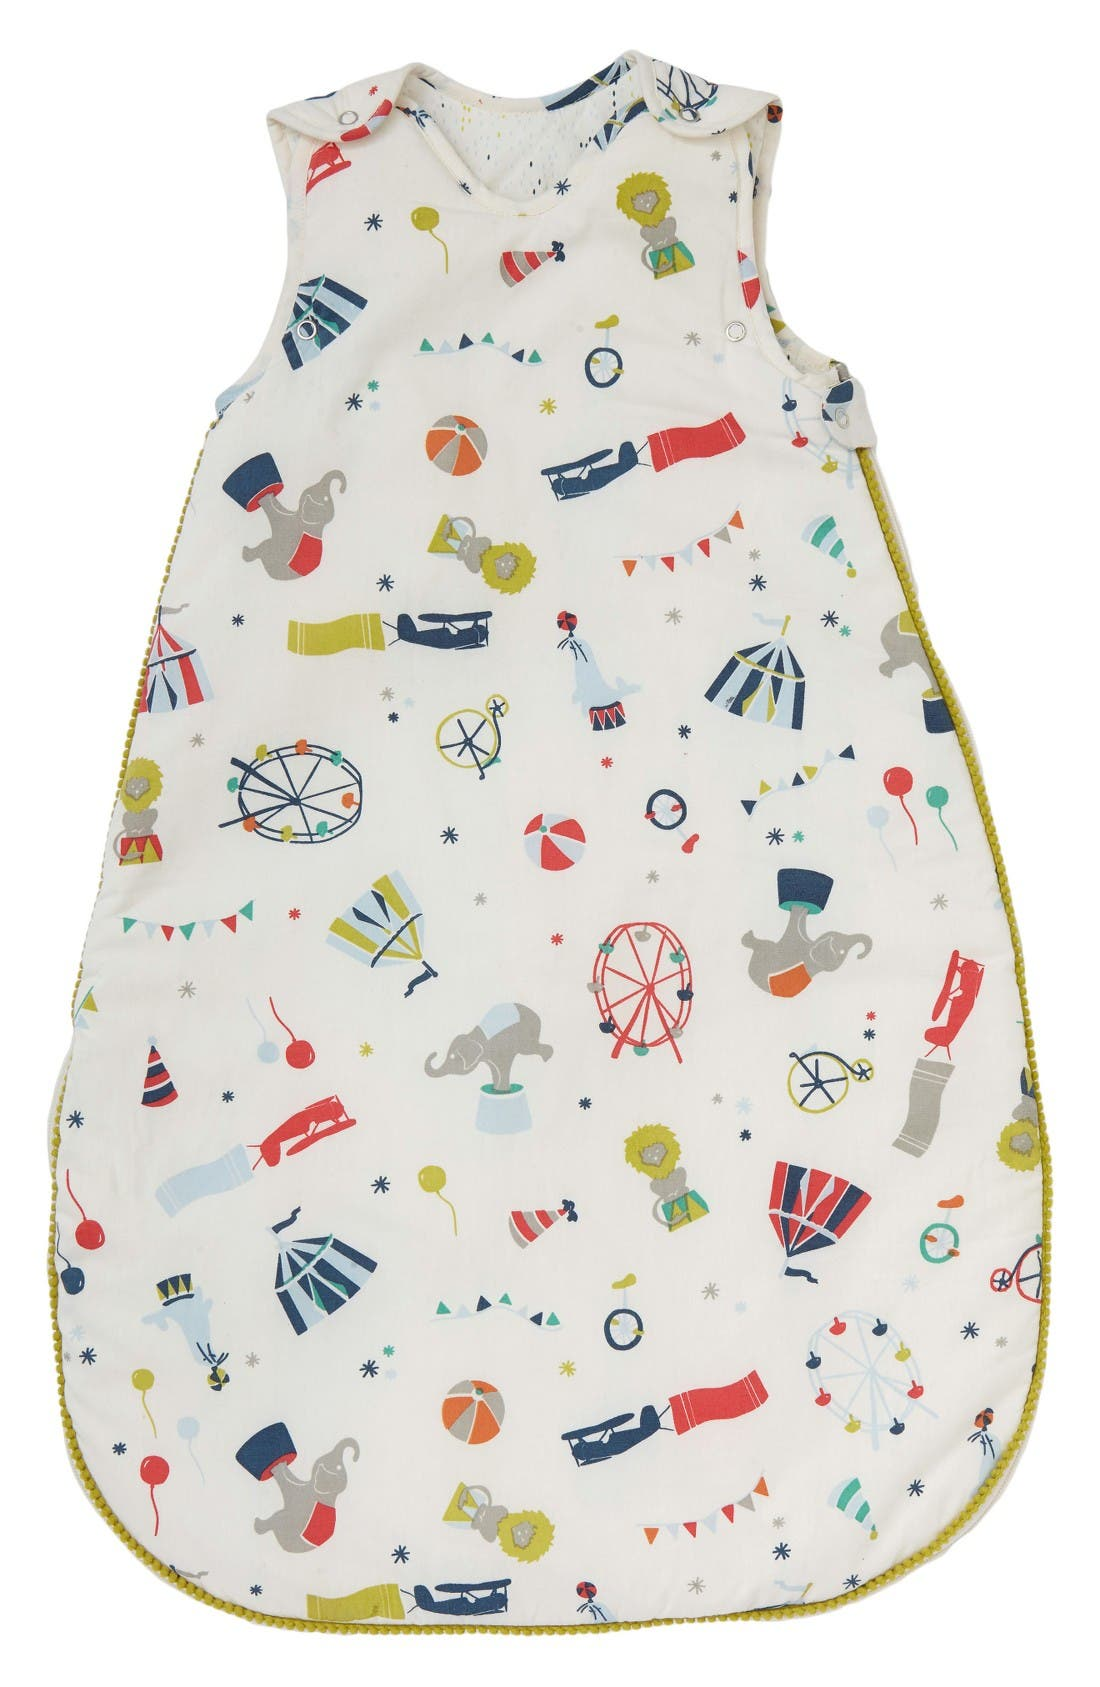 Big Top Print Cotton Wearable Blanket,                         Main,                         color, Blue